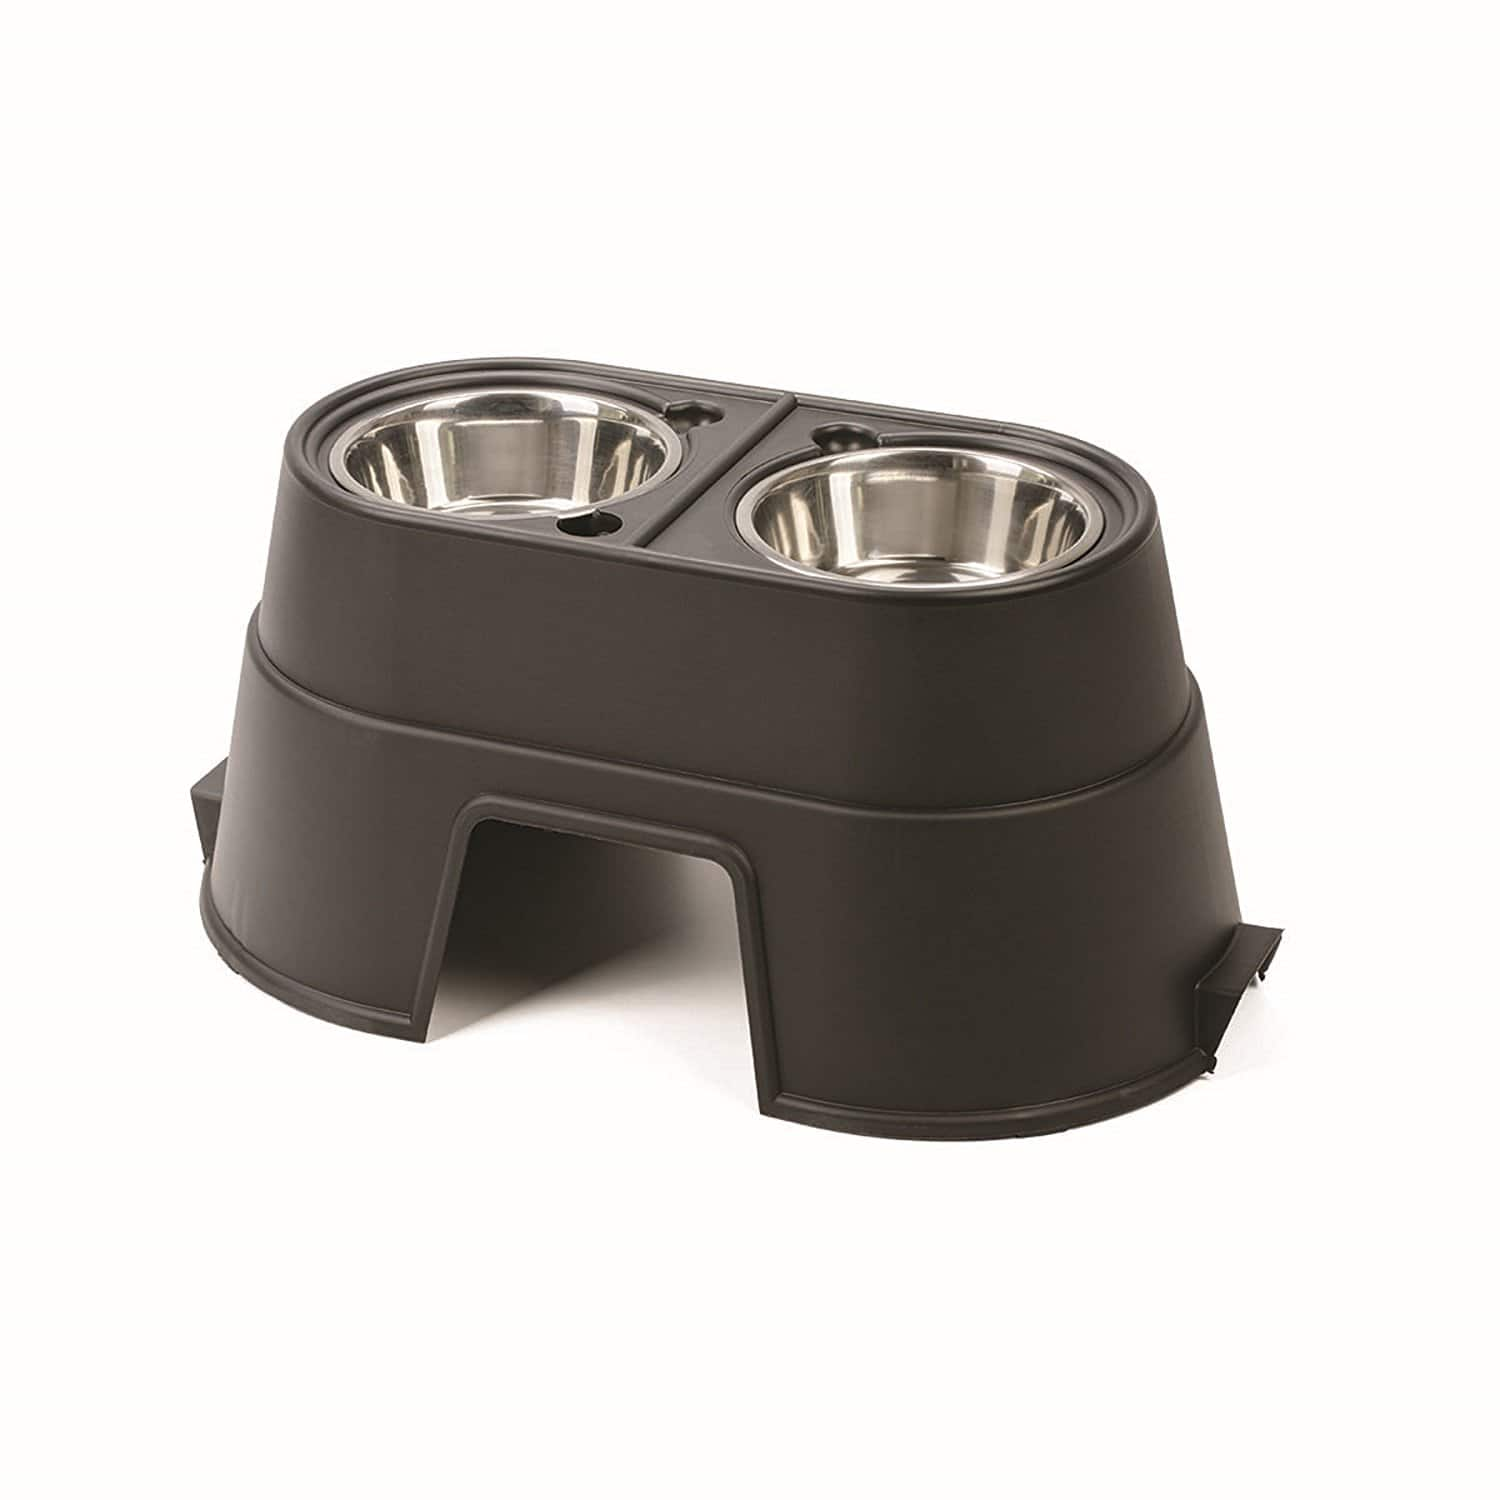 Elevated Pet Feeder $17.99